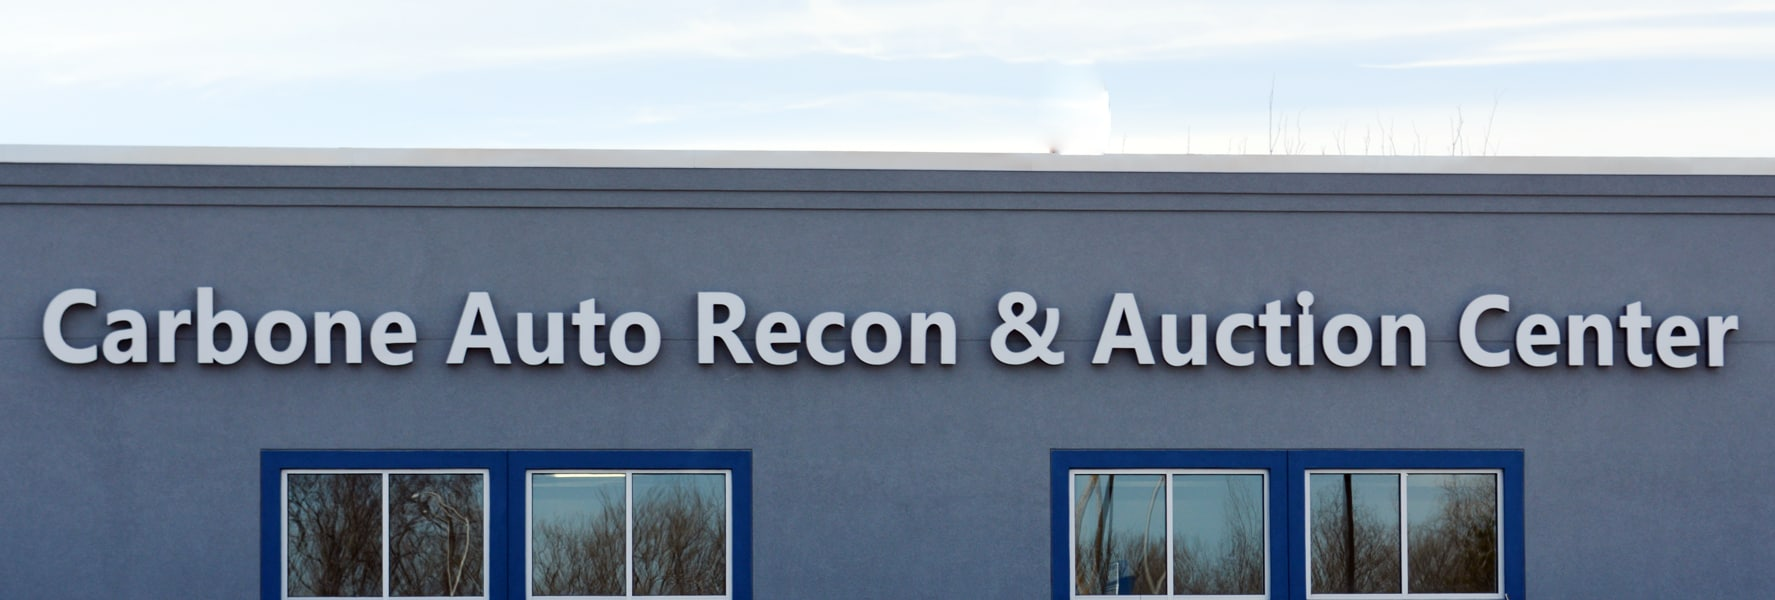 Carbone Auto Recon & Auction Center